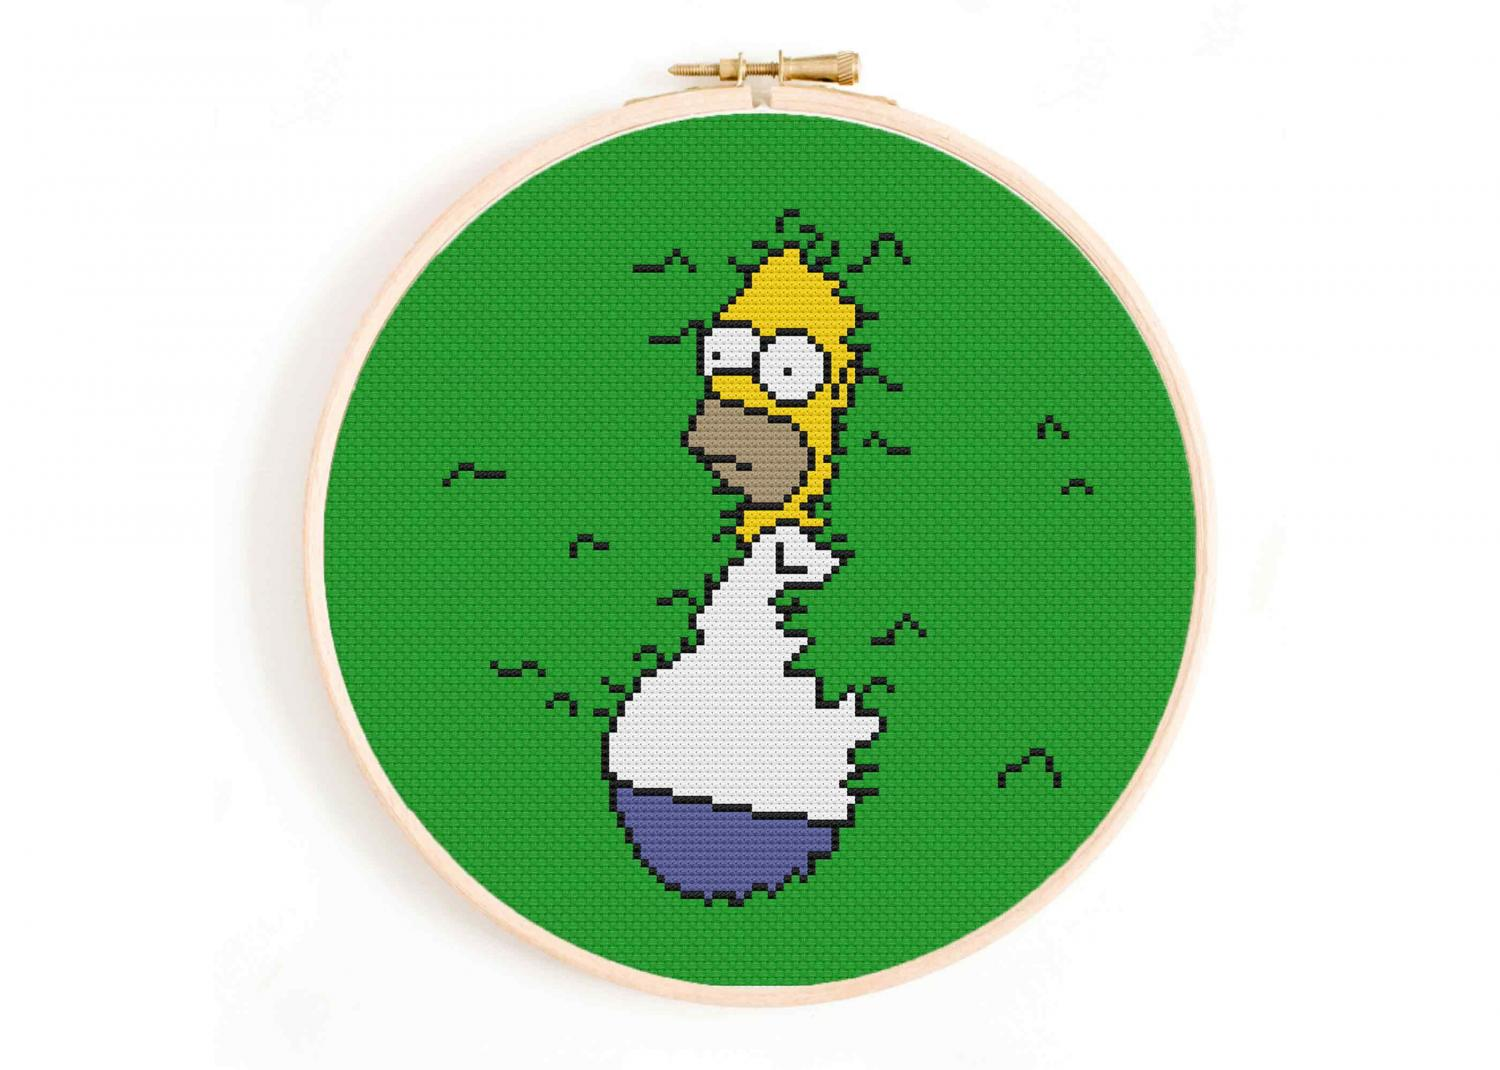 Homer Backing Up Into The Bushes - Home Simpson Bushes Meme Cross Stitch